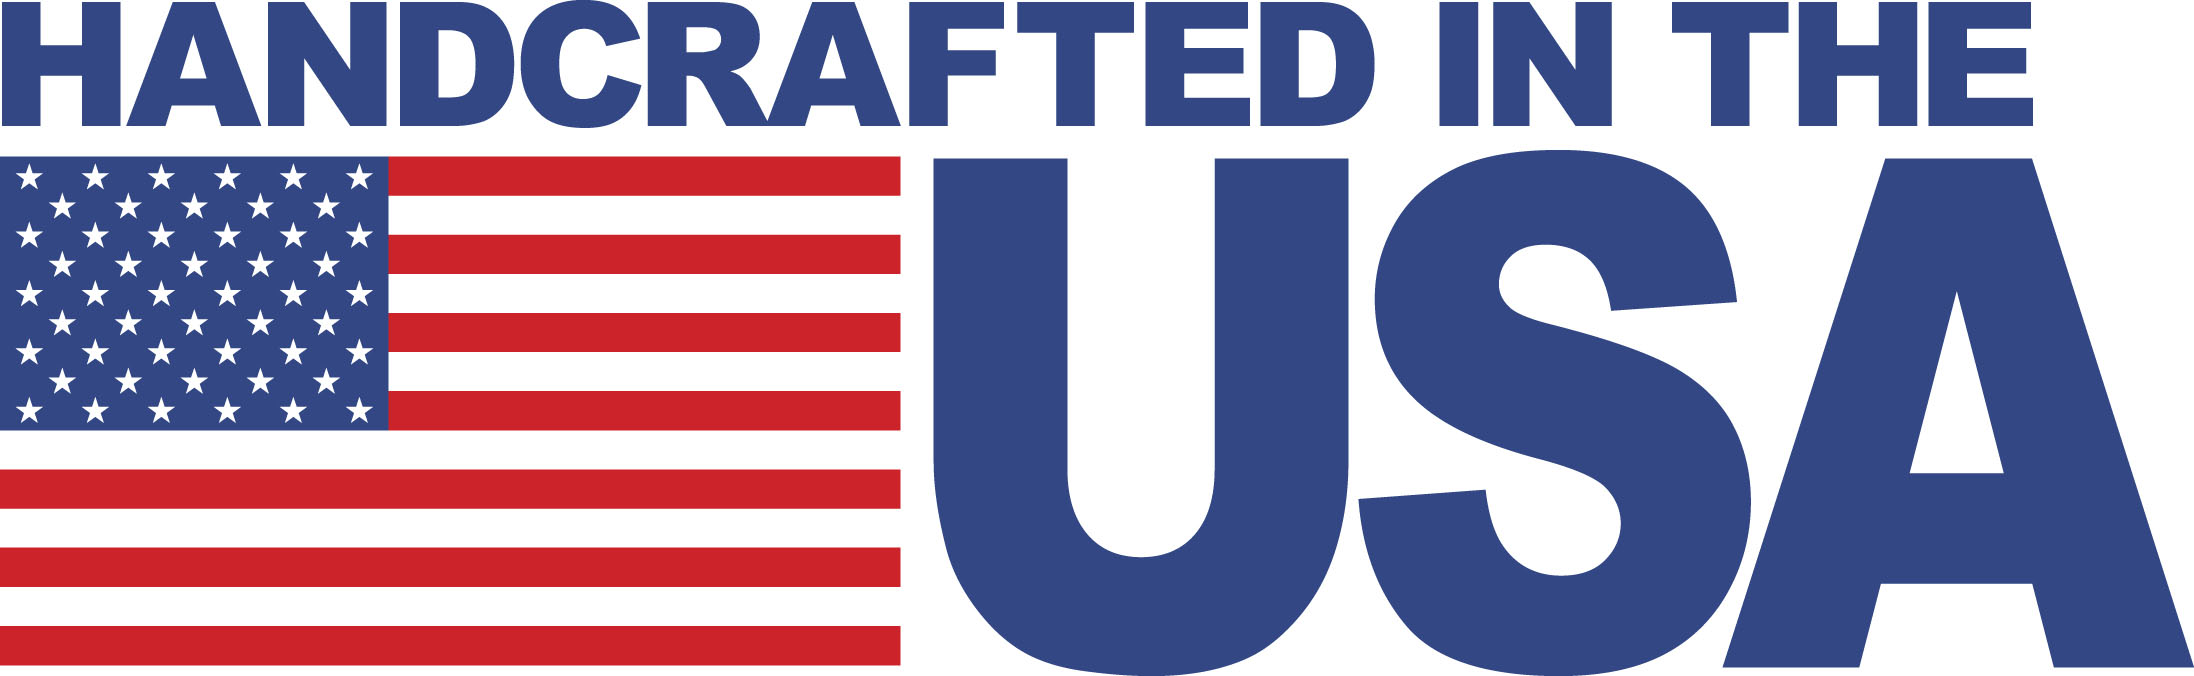 handcrafted-made-in-usa.jpg